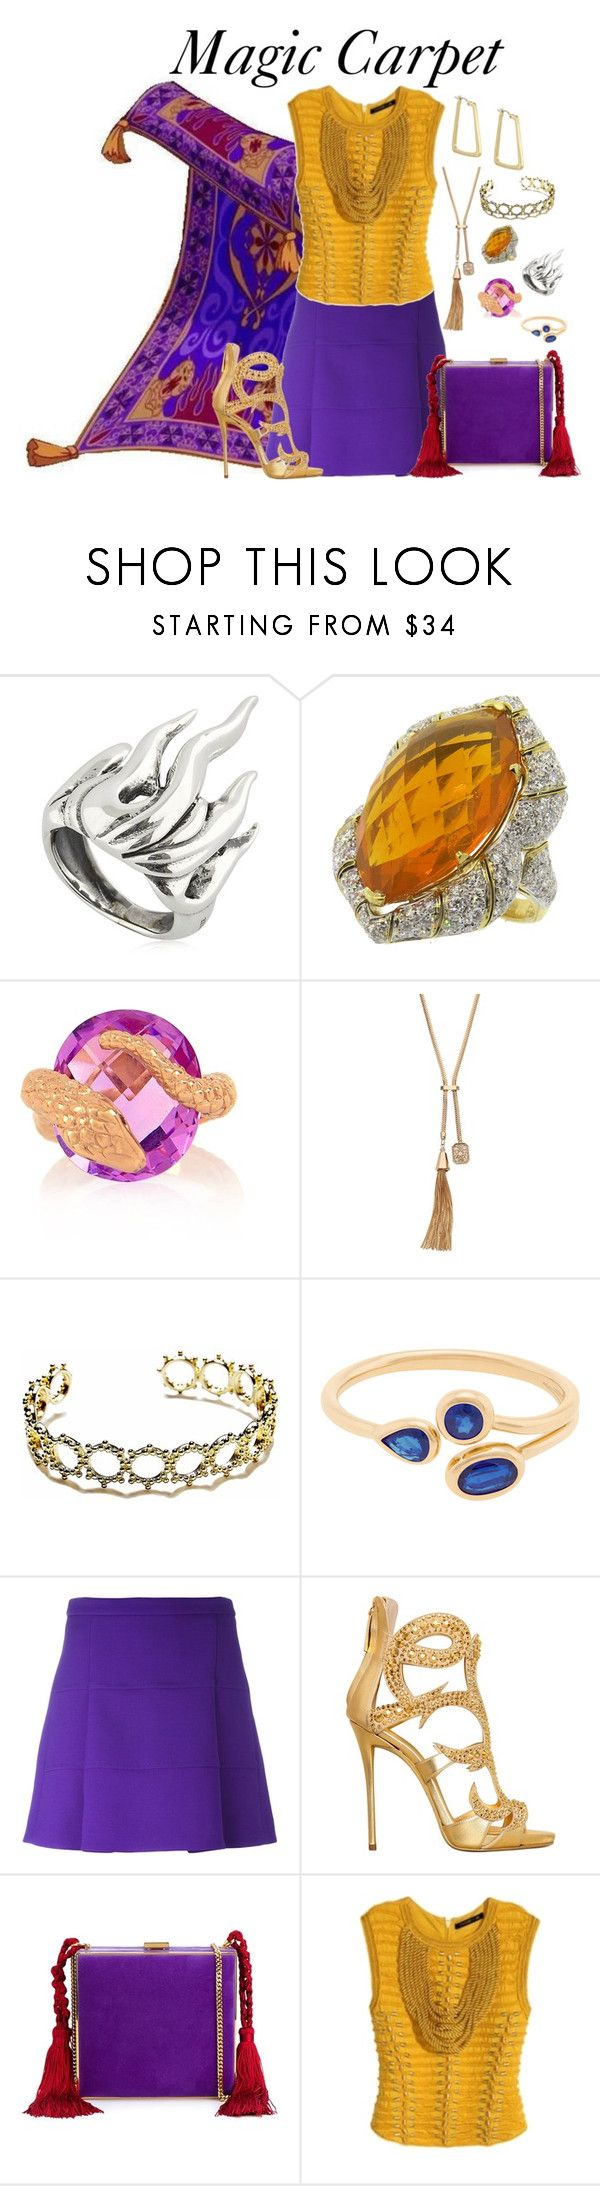 """Magic Carpet from Aladdin"" by pie-epic ❤ liked on Polyvore featuring Cantini MC Firenze, Alexandra Alberta, Jennifer Lopez, Agnes de Verneuil, AYA, Victoria, Victoria Beckham, Giuseppe Zanotti, Alessandra Rich, Balmain and Laundry by Shelli Segal"